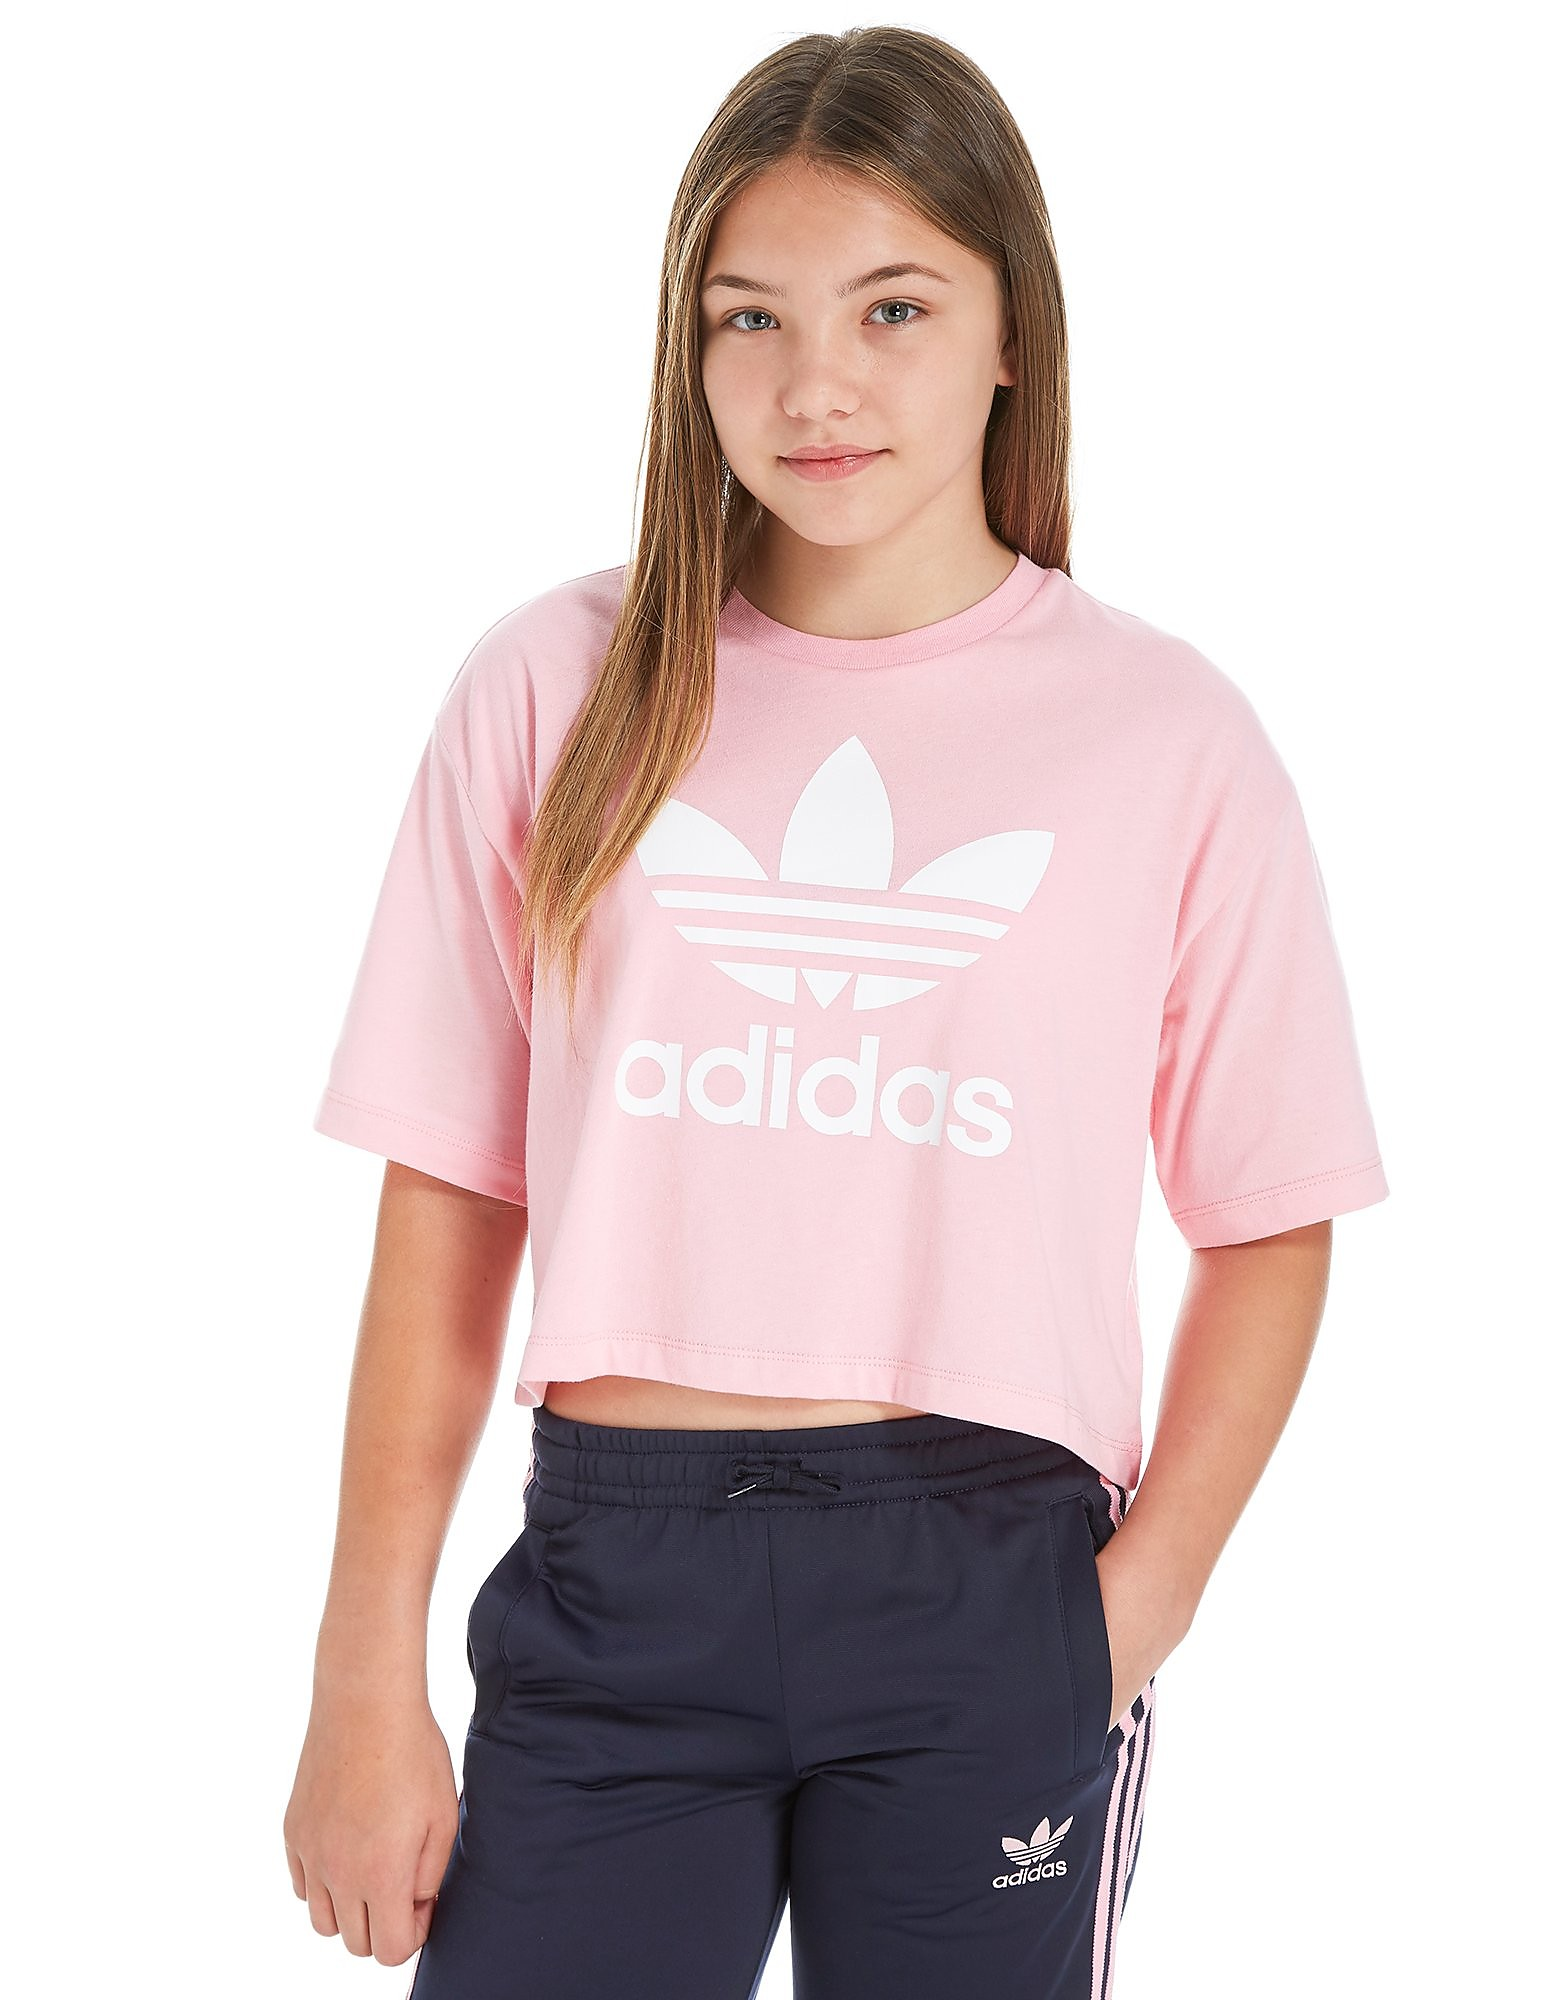 adidas Originals Girls' Trefoil Crop T-Shirt Junior